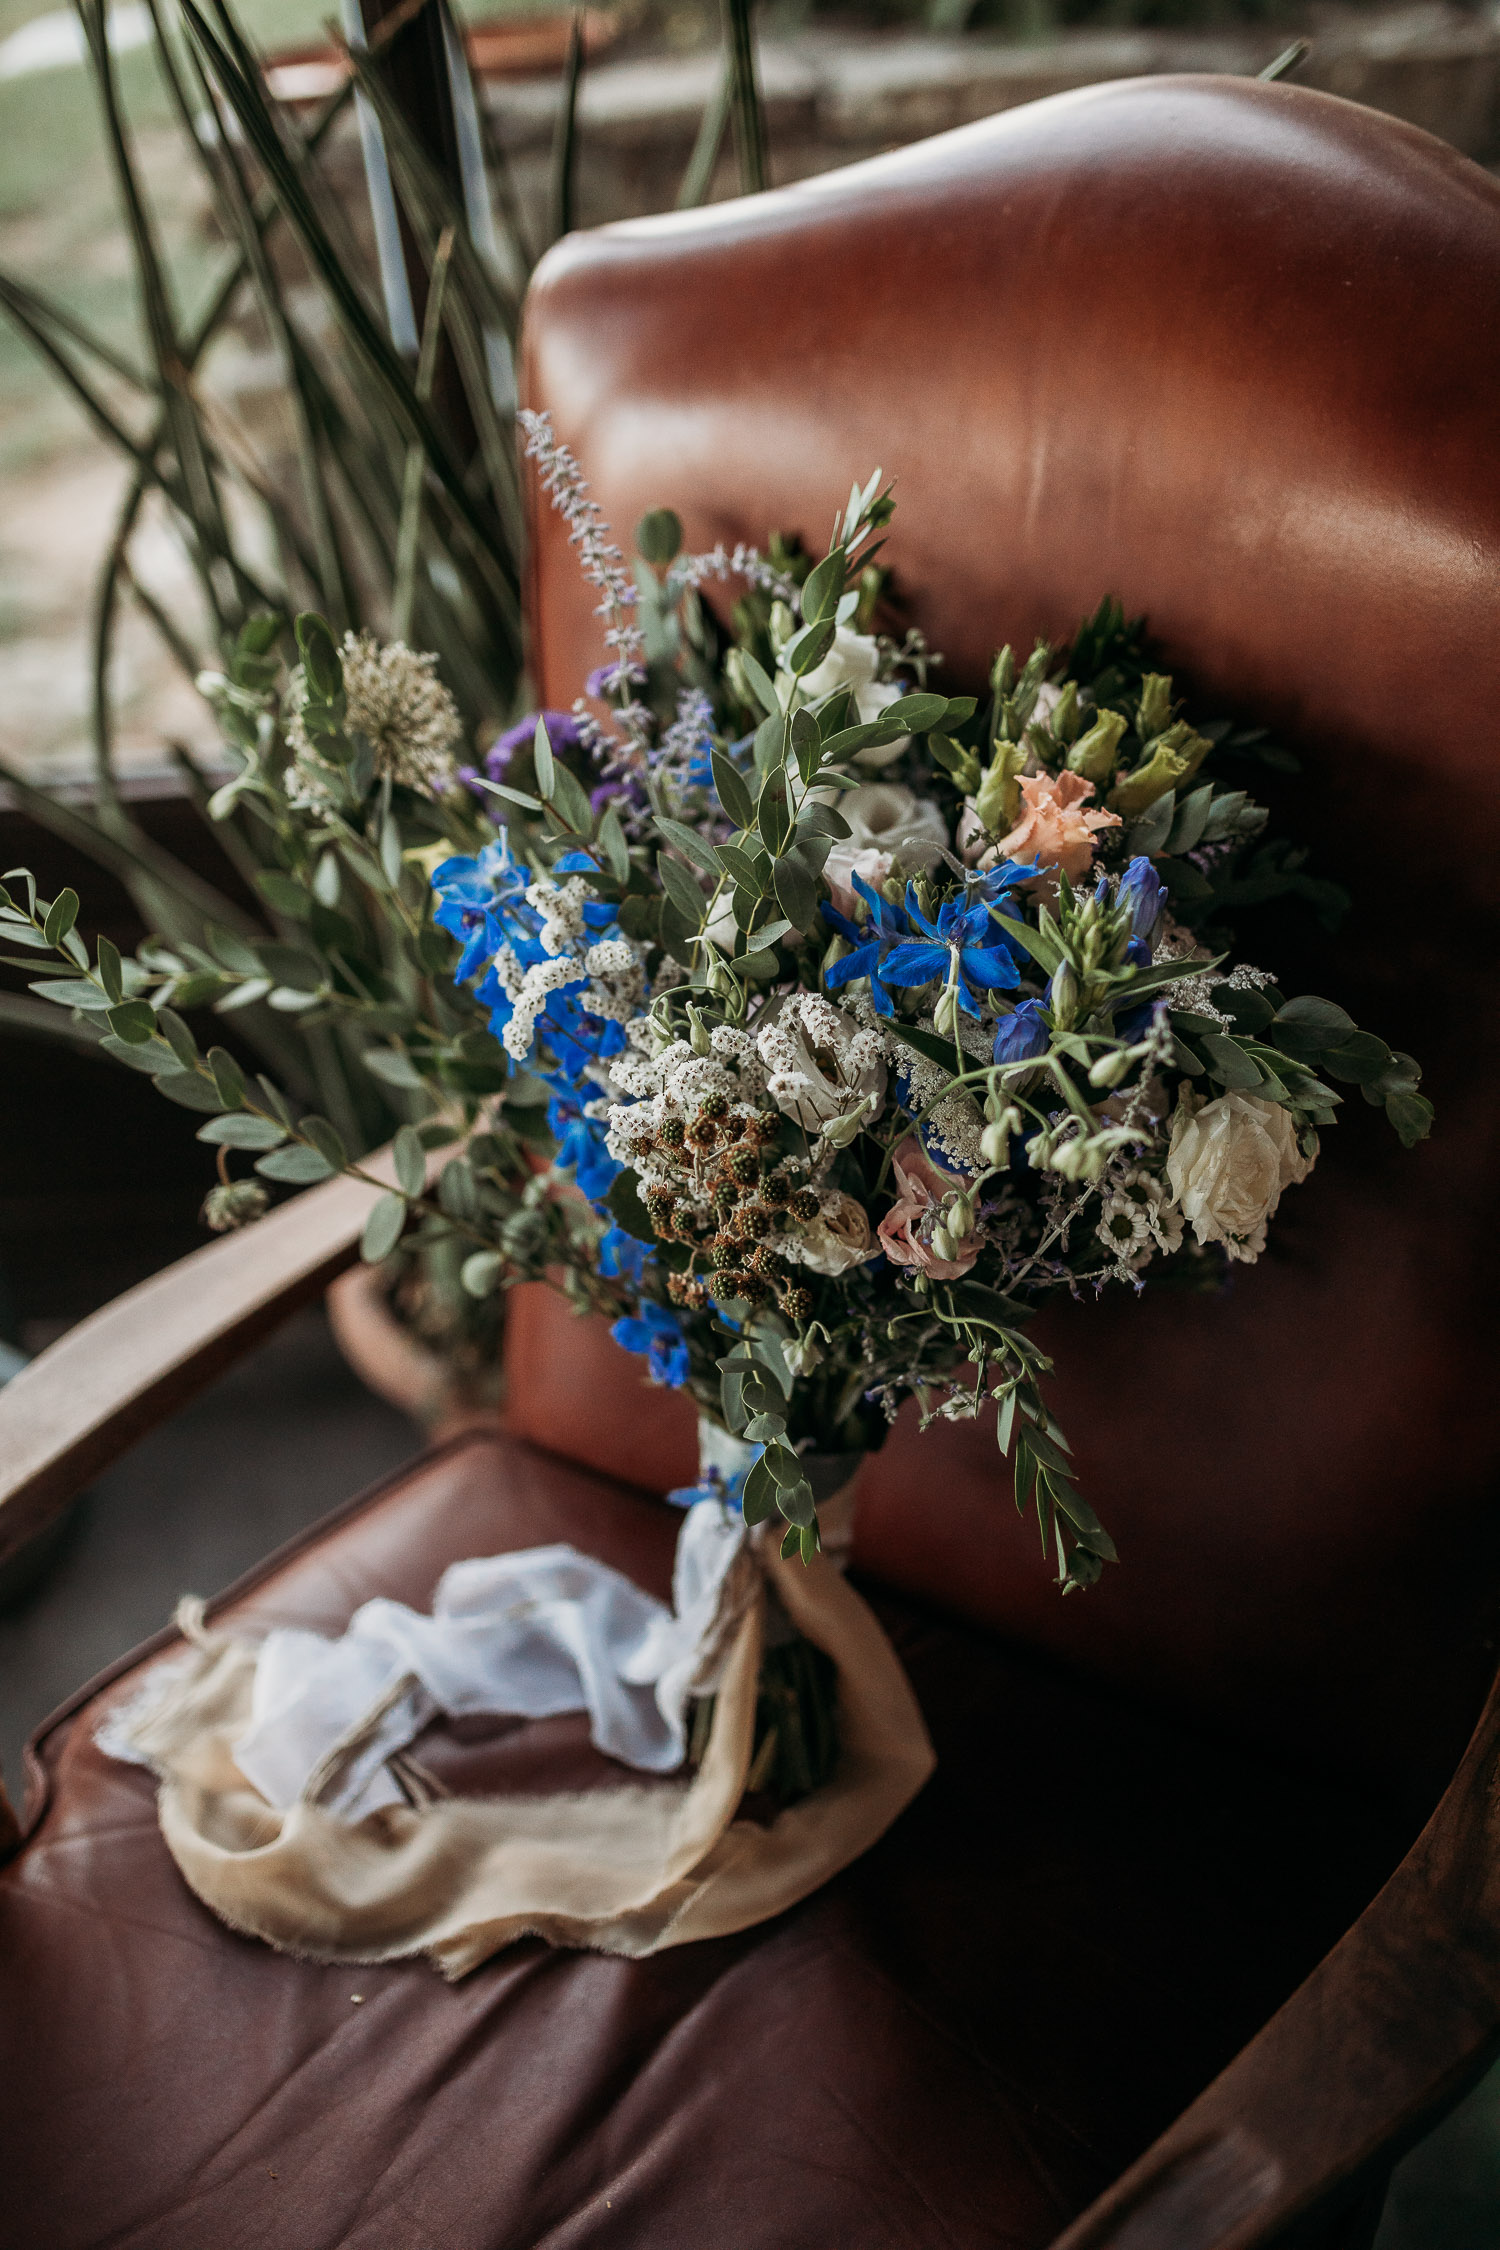 Rustic bouquet with blue wildflowers and cotton ribbons